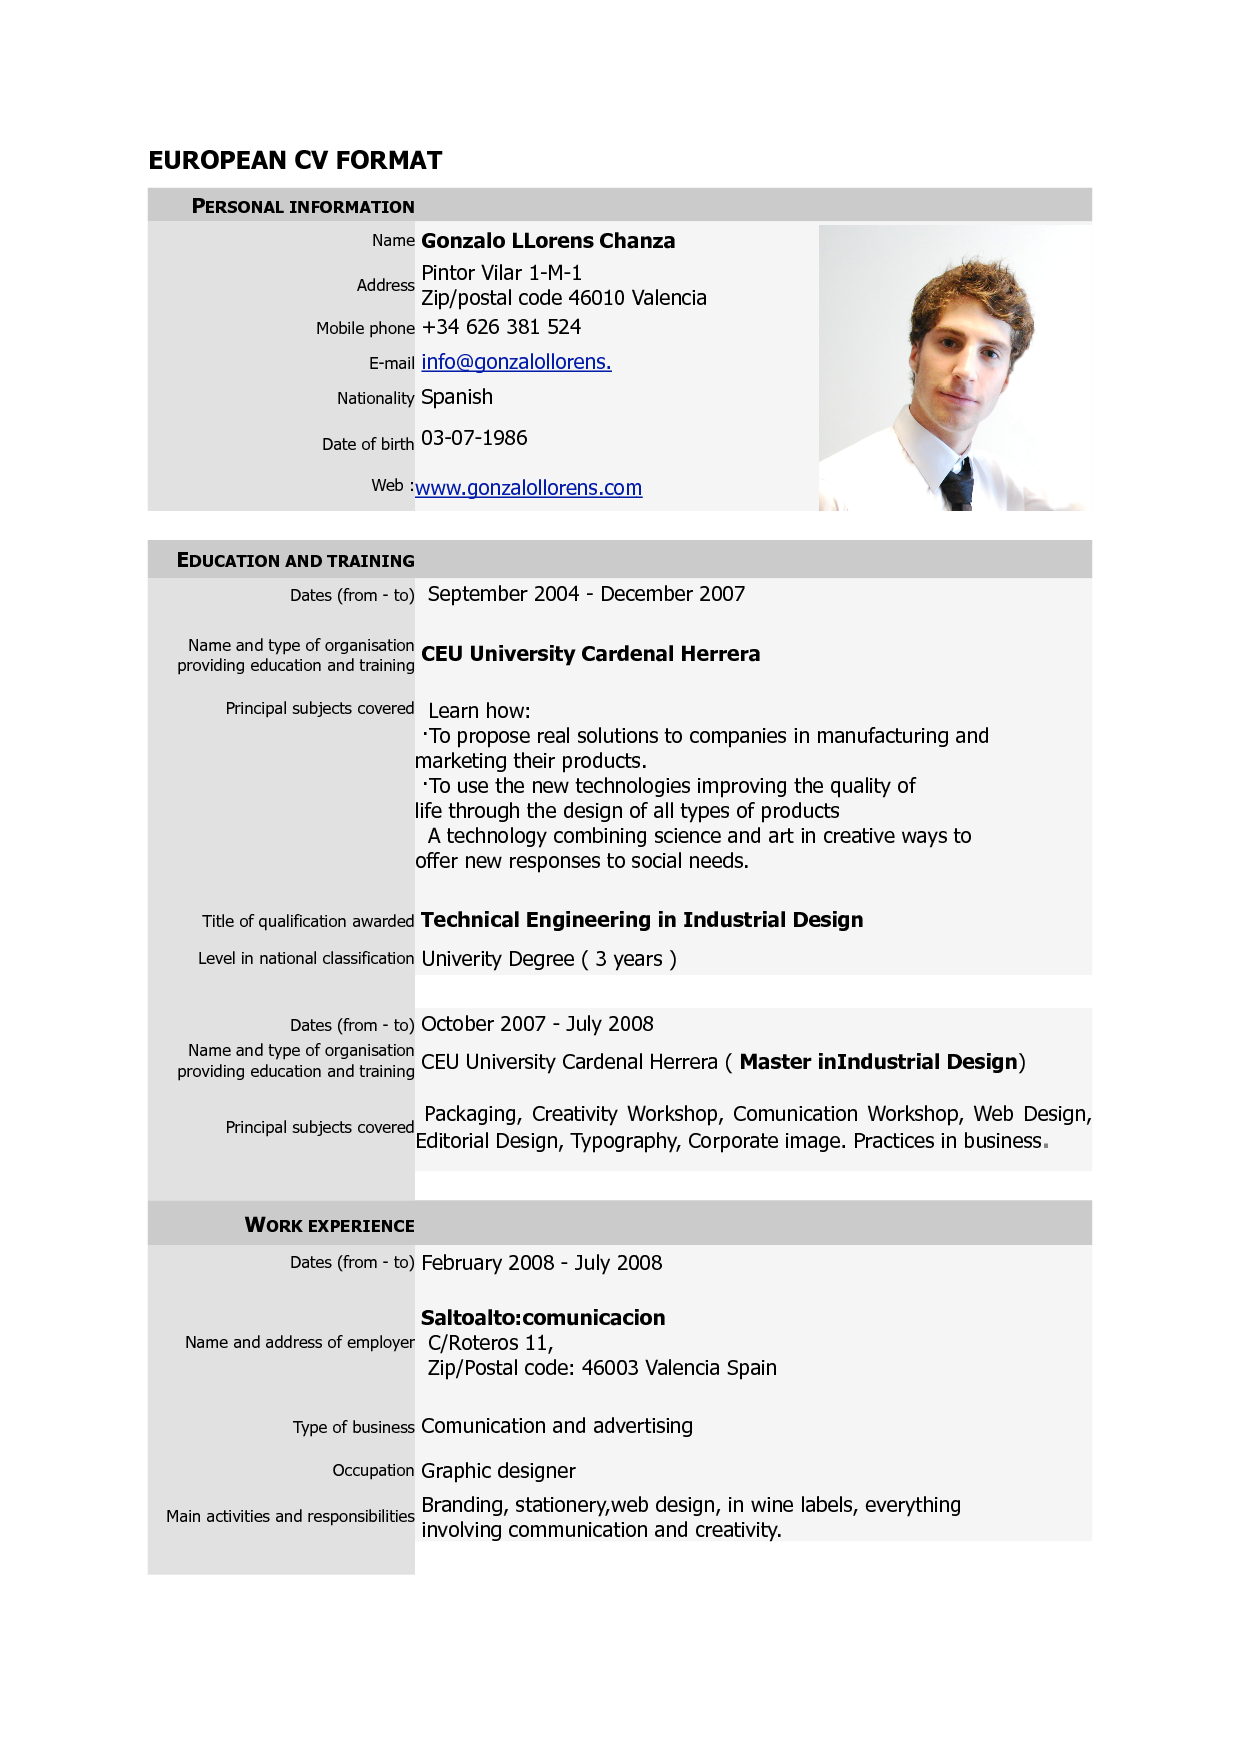 Example Resume Pdf Free Download Cv Europass Pdf Europass Home European Cv